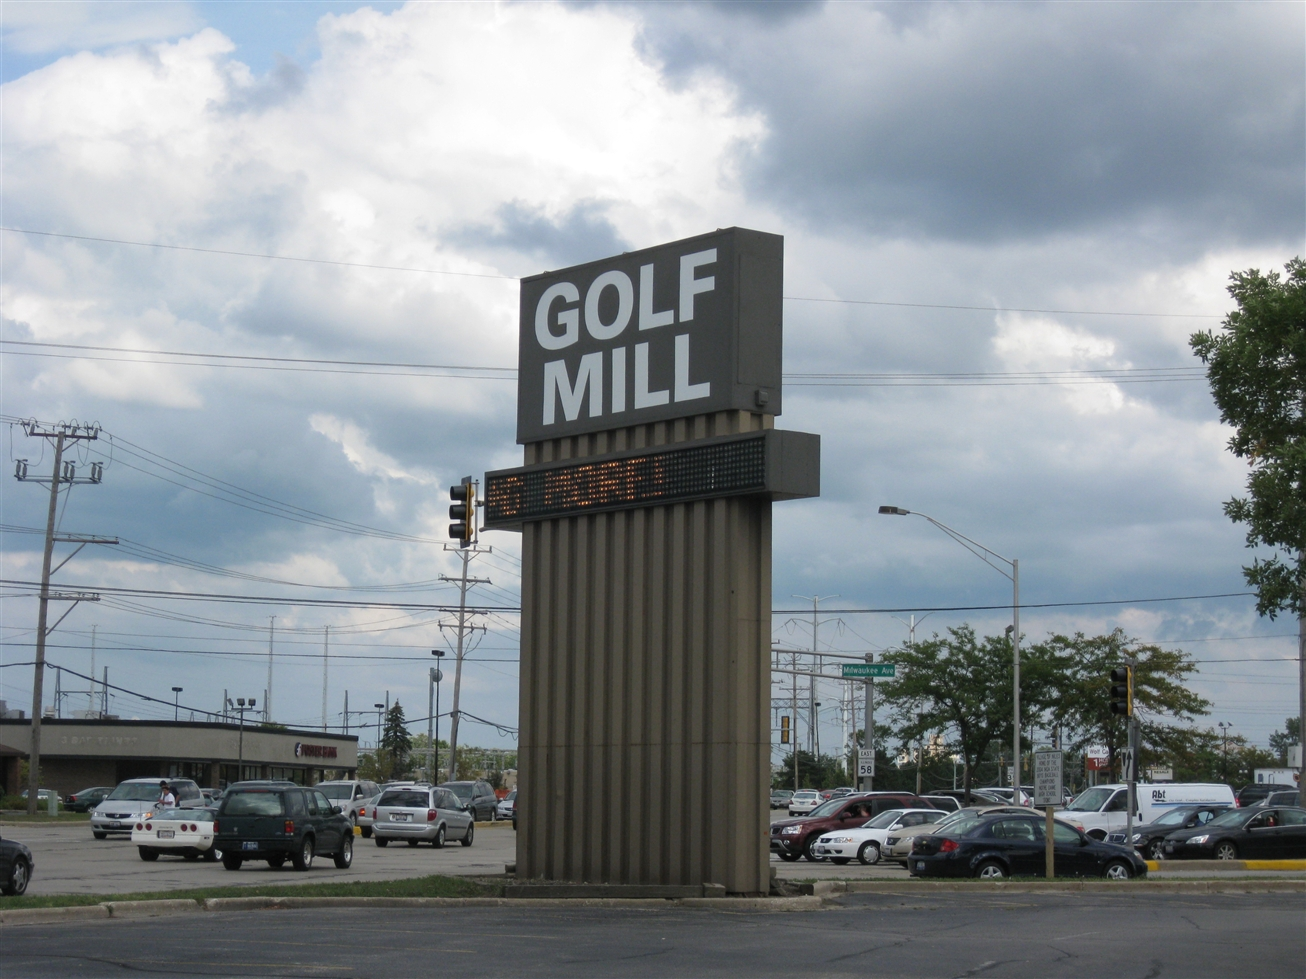 Golf Mill Shopping Center in Niles, IL